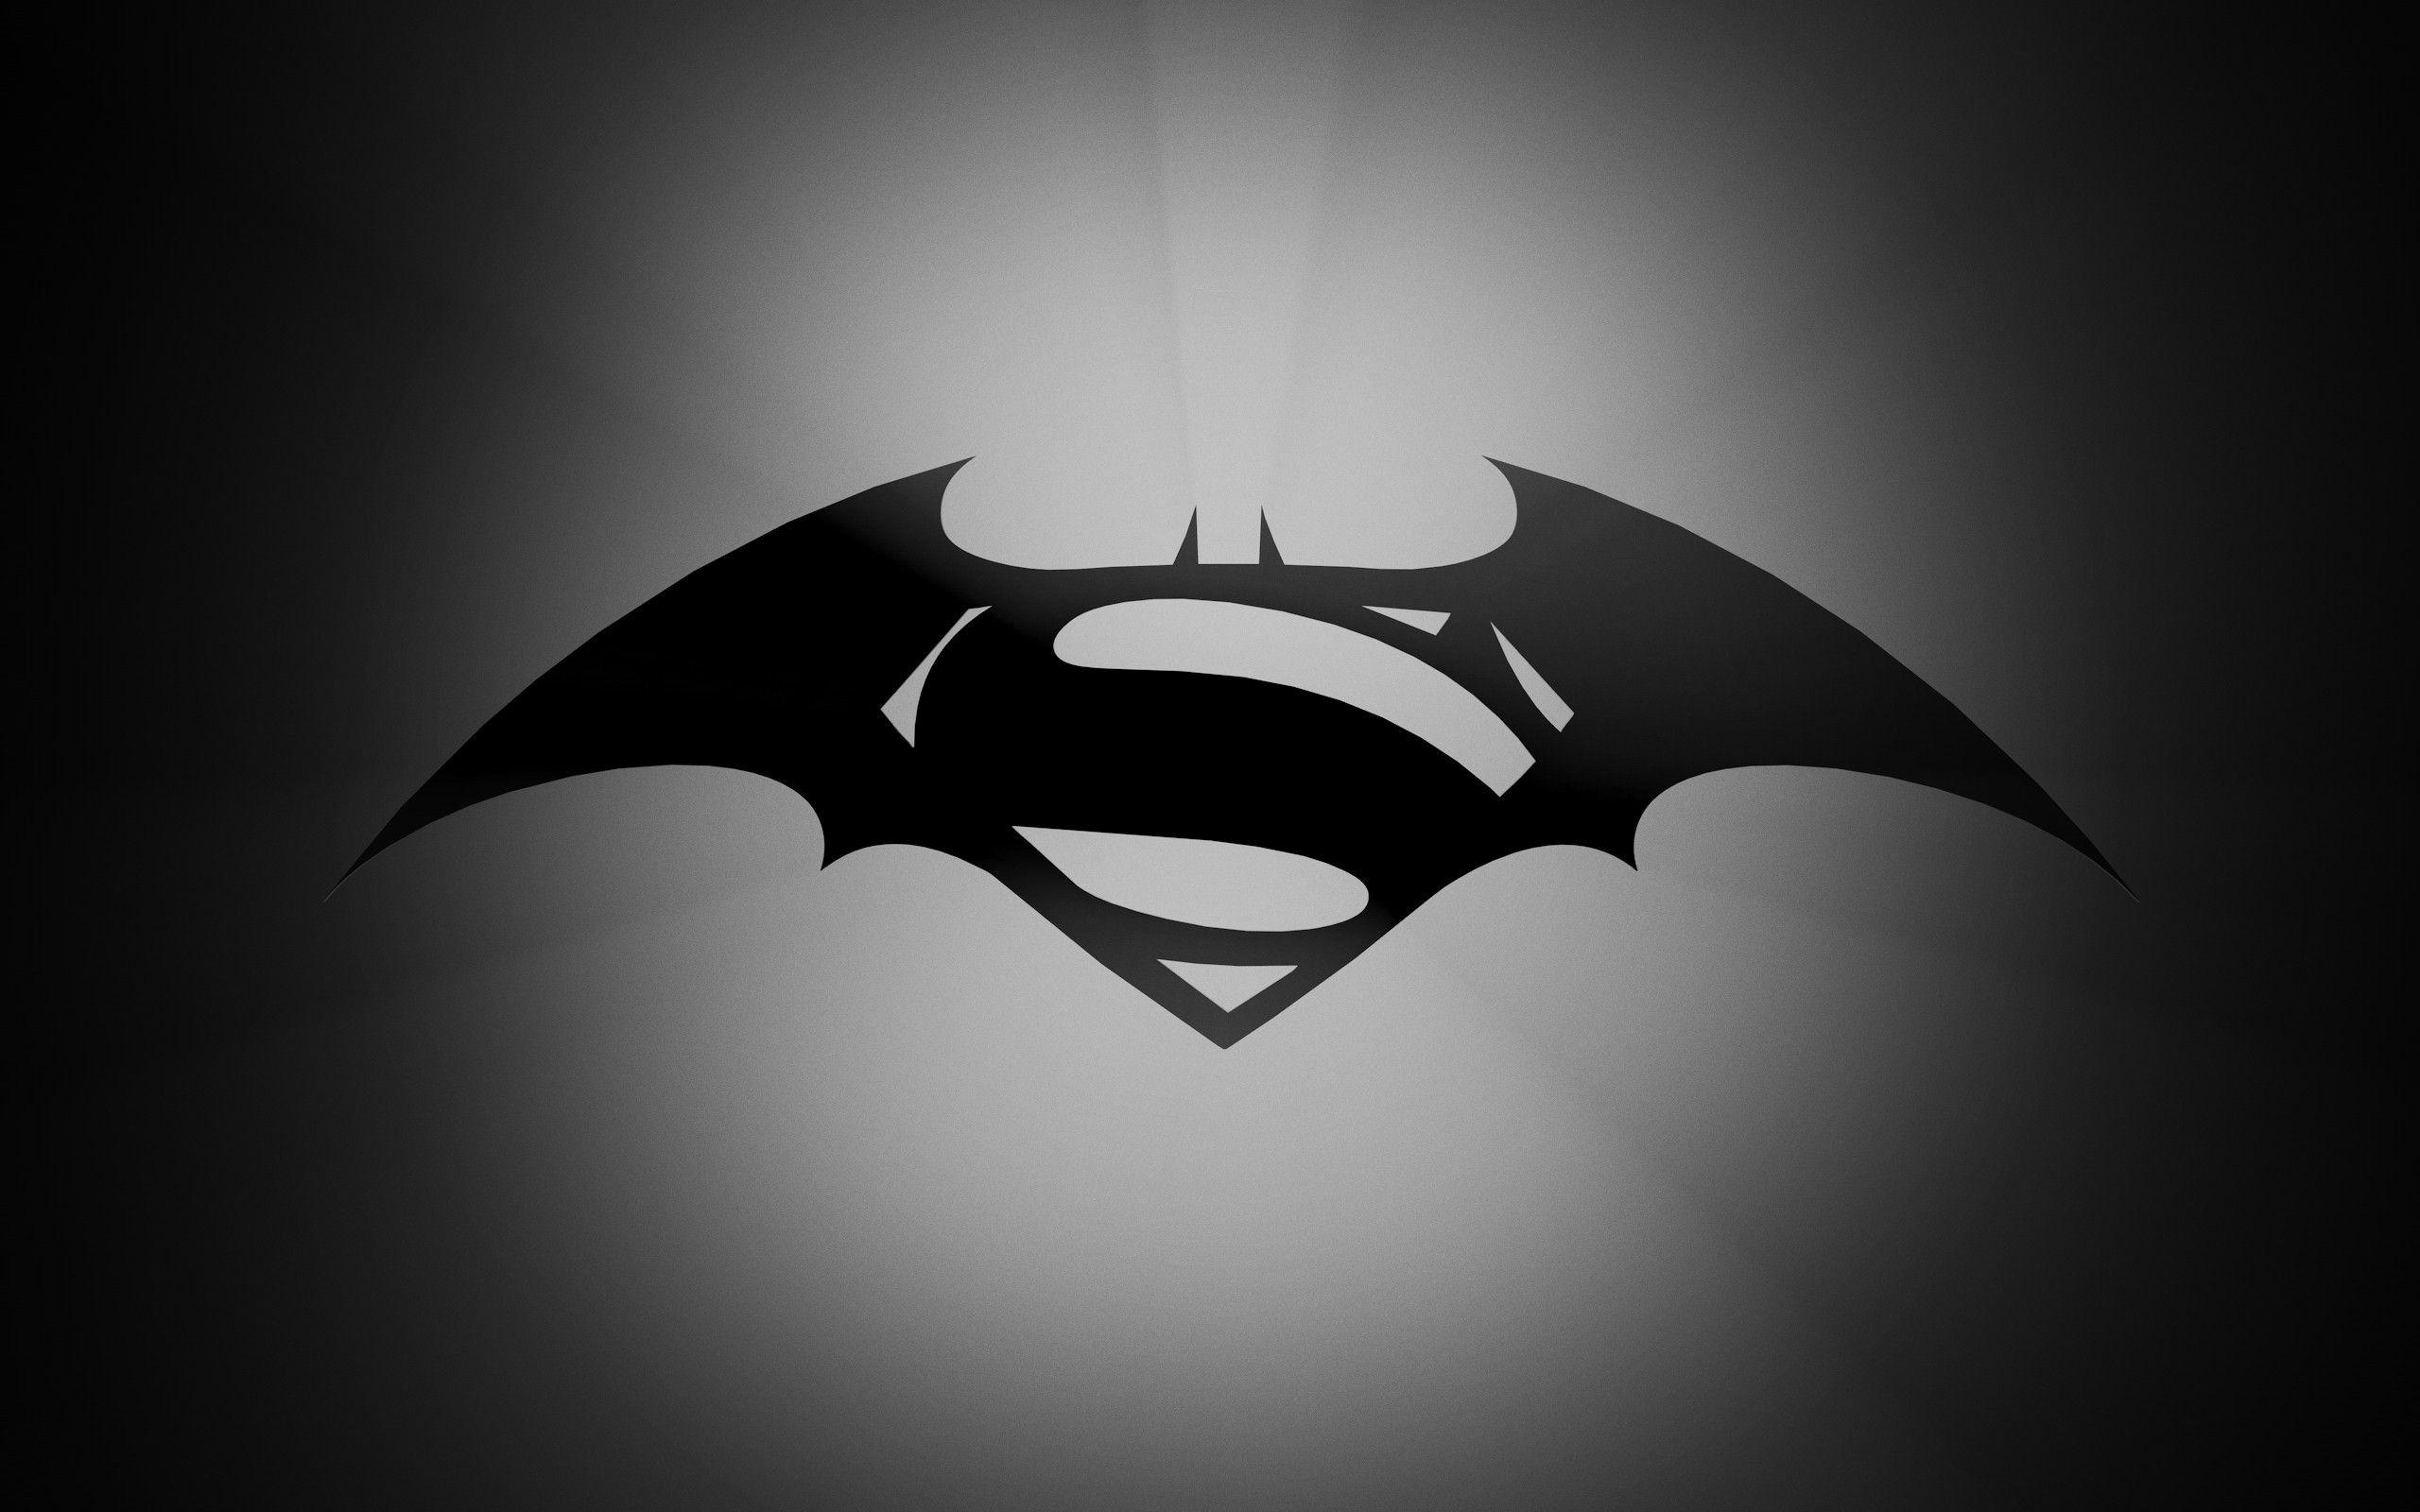 ipad mini wallpaper batman logo hd 1080p 12 hd wallpapers animg com